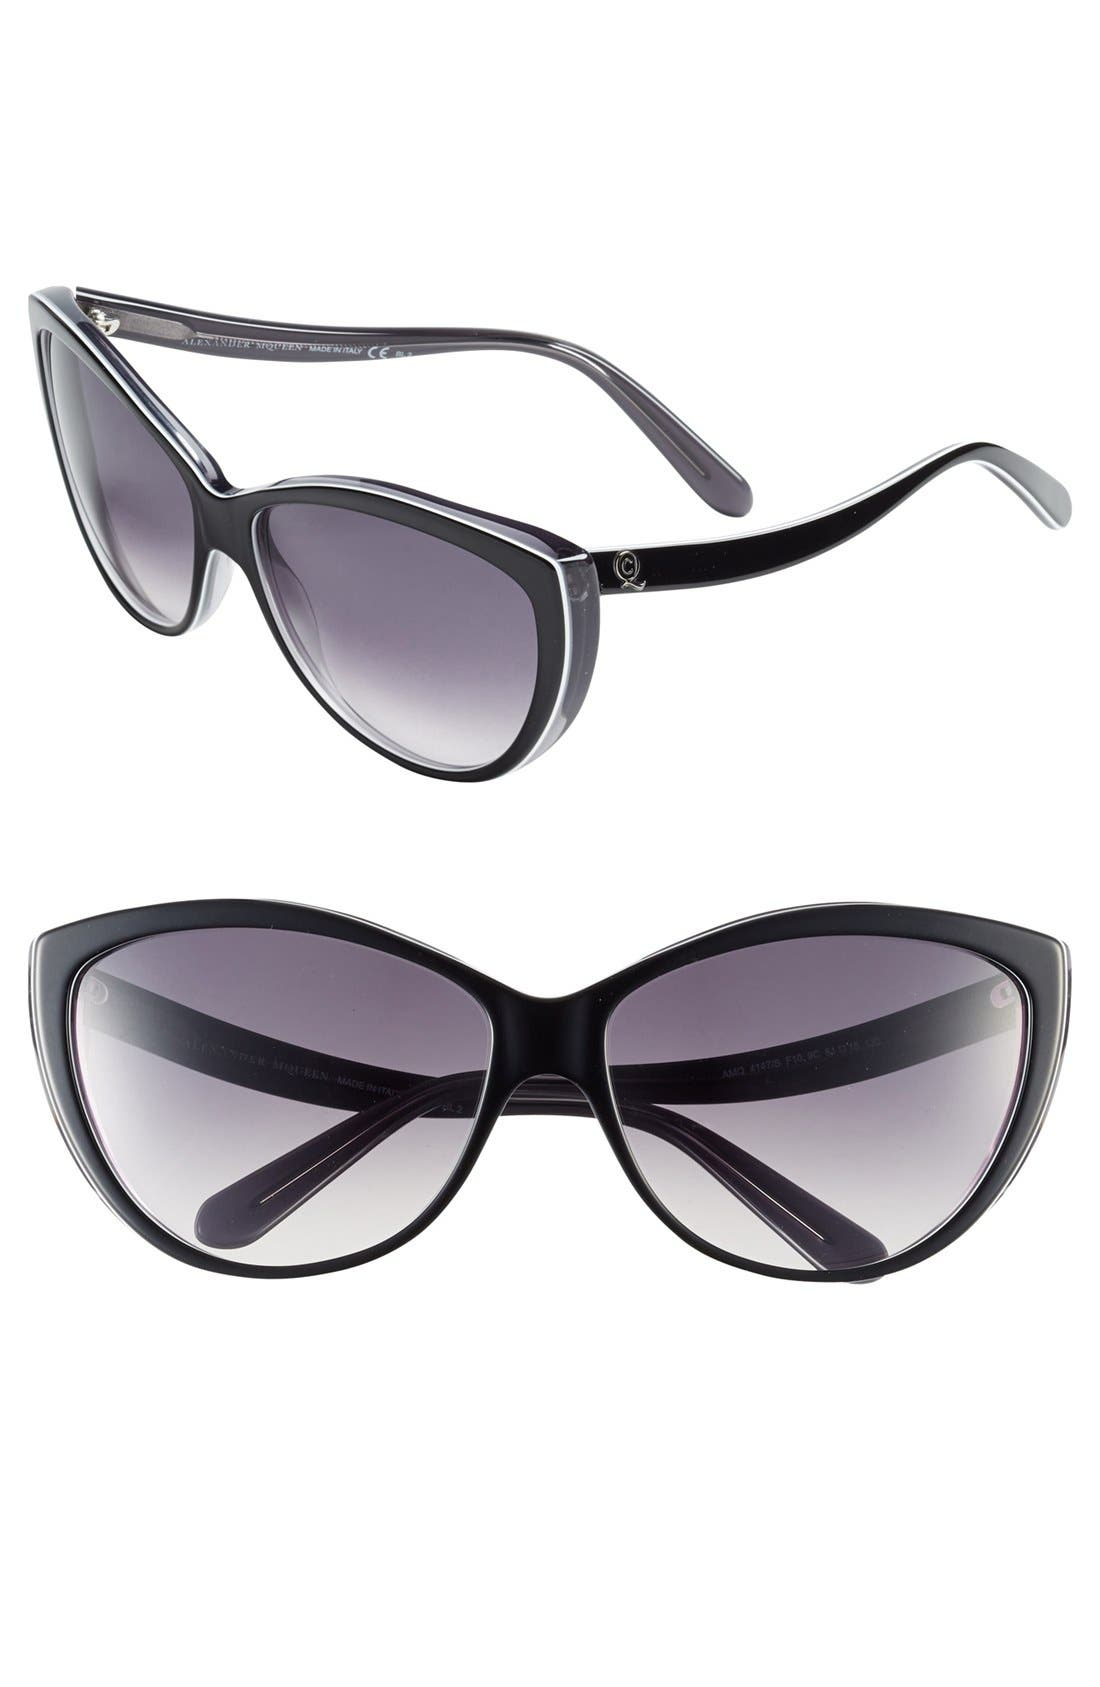 Main Image - Alexander McQueen 61mm Two-Tone Cat Eye Sunglasses